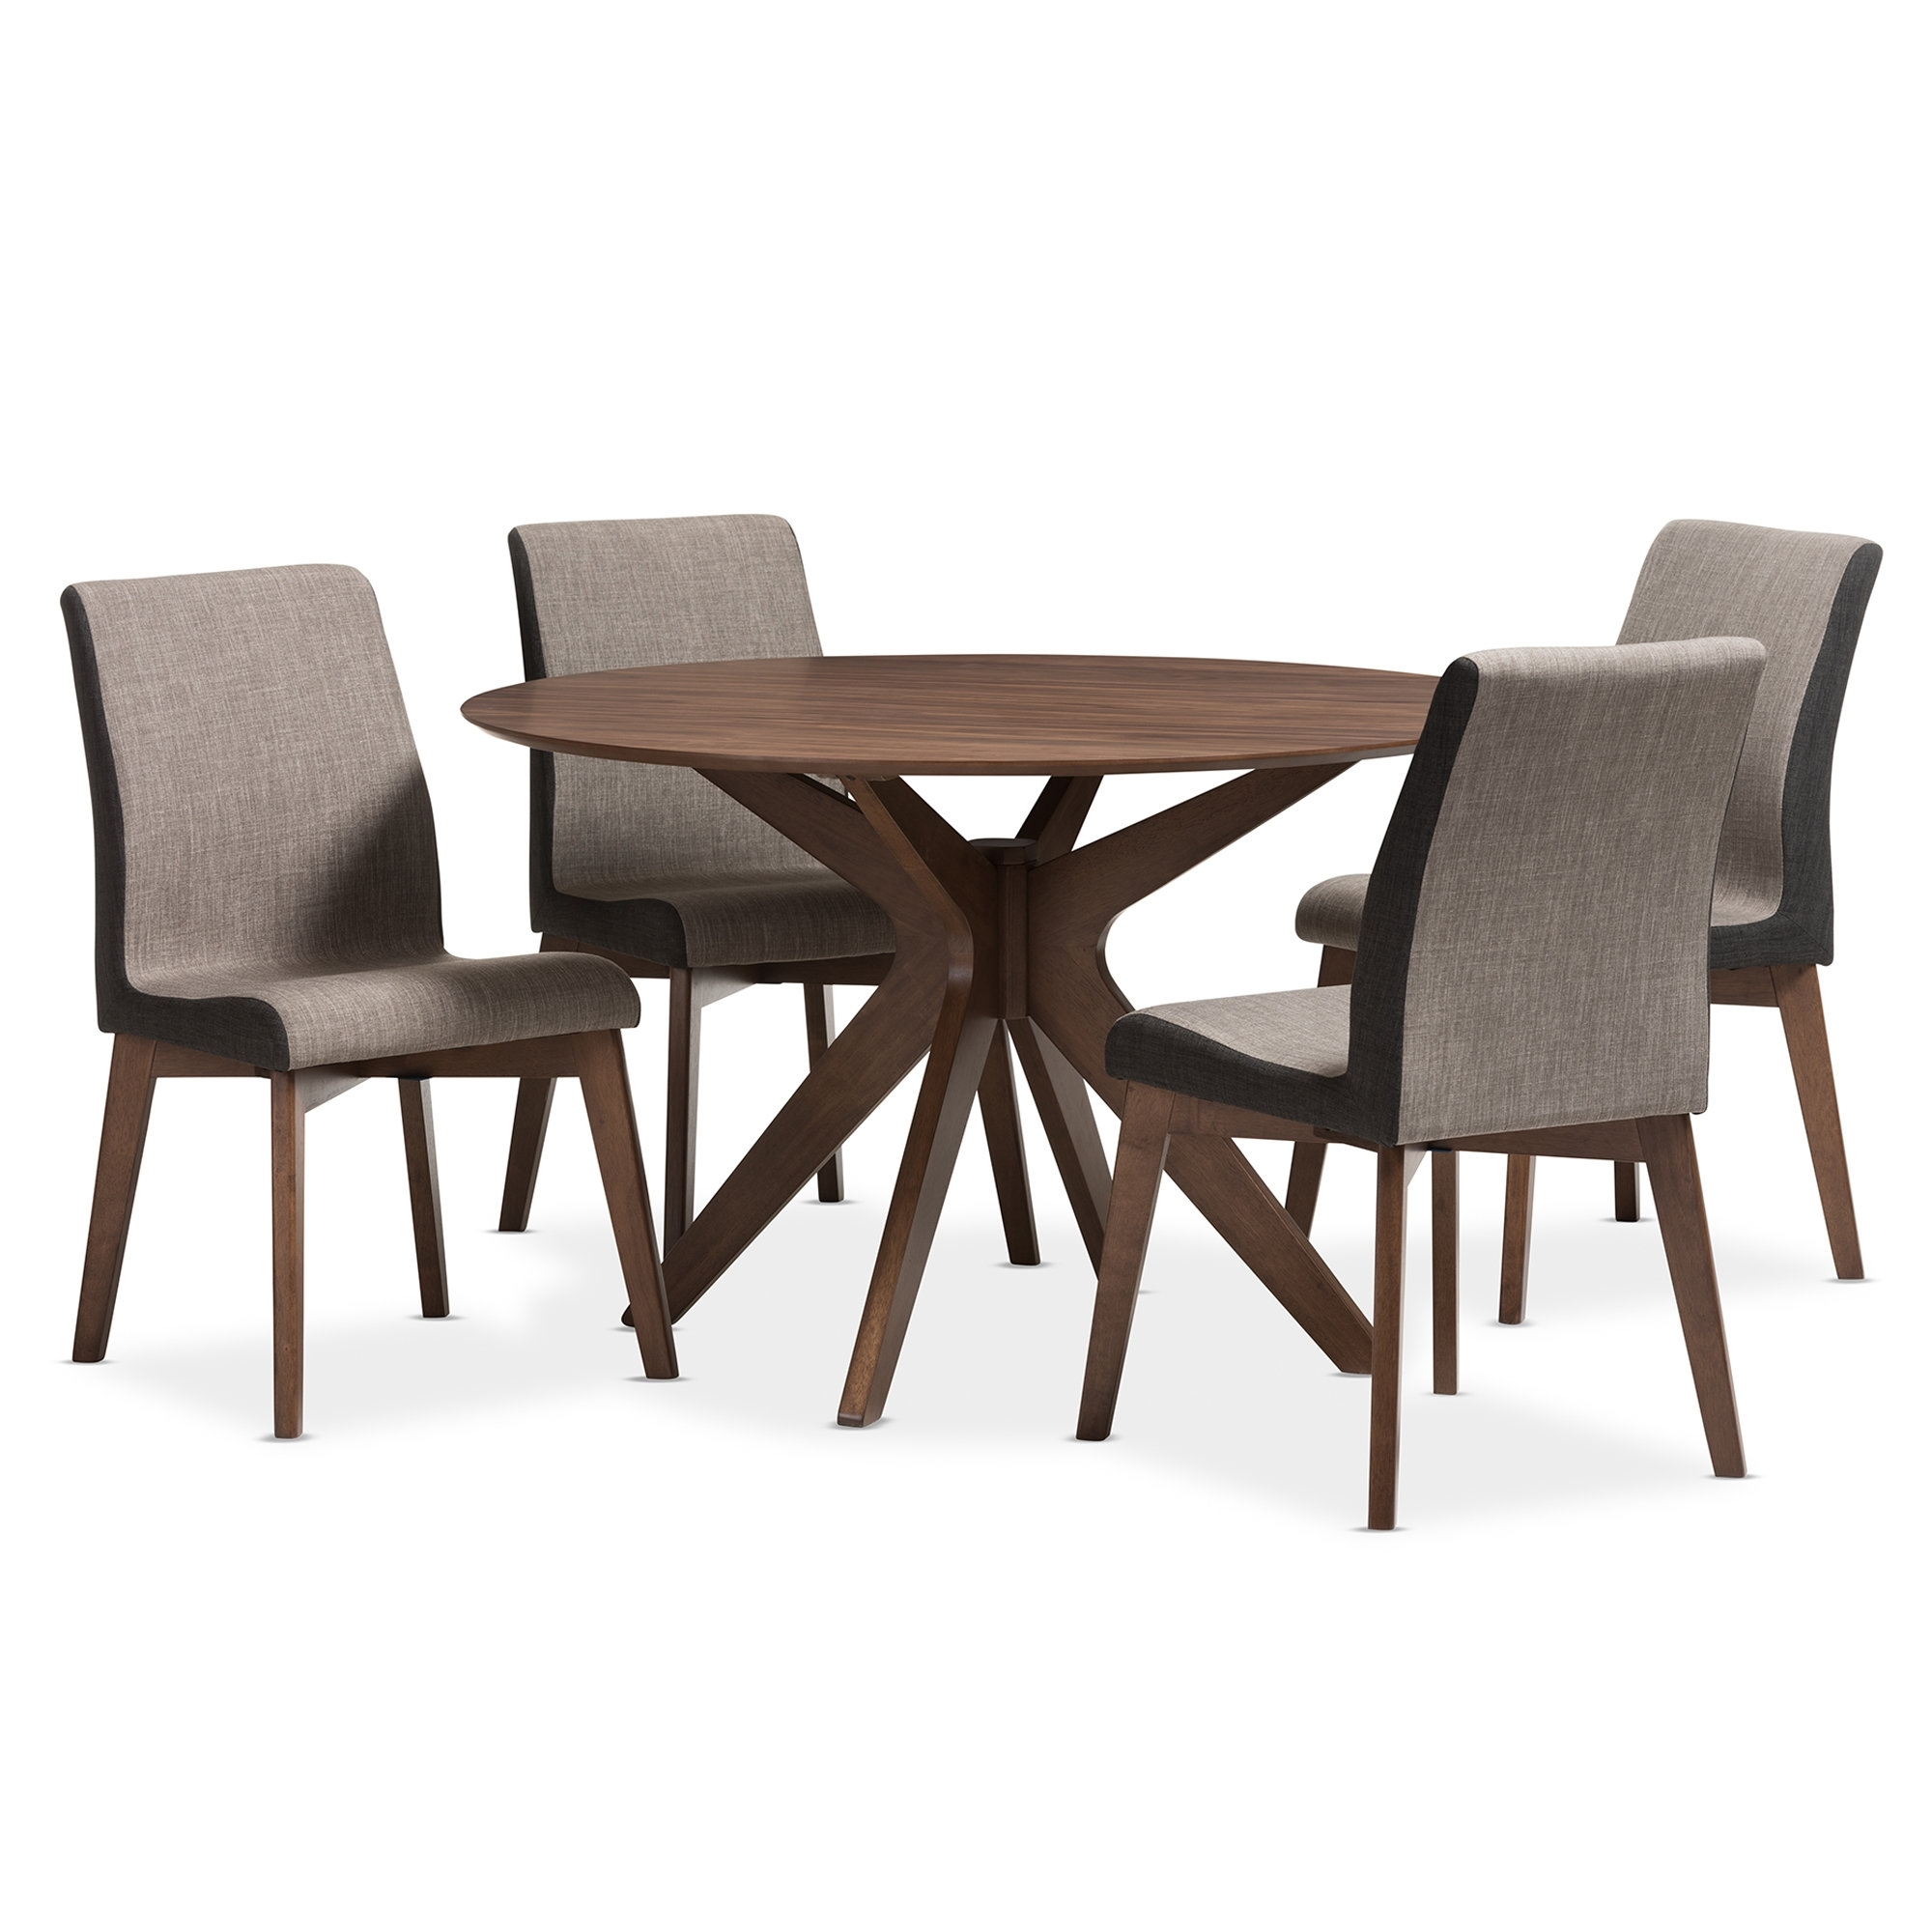 Popular Wholesale Interiors Kimberly Mid Century Modern Wood Round 5 Piece Within Laurent 5 Piece Round Dining Sets With Wood Chairs (View 13 of 25)